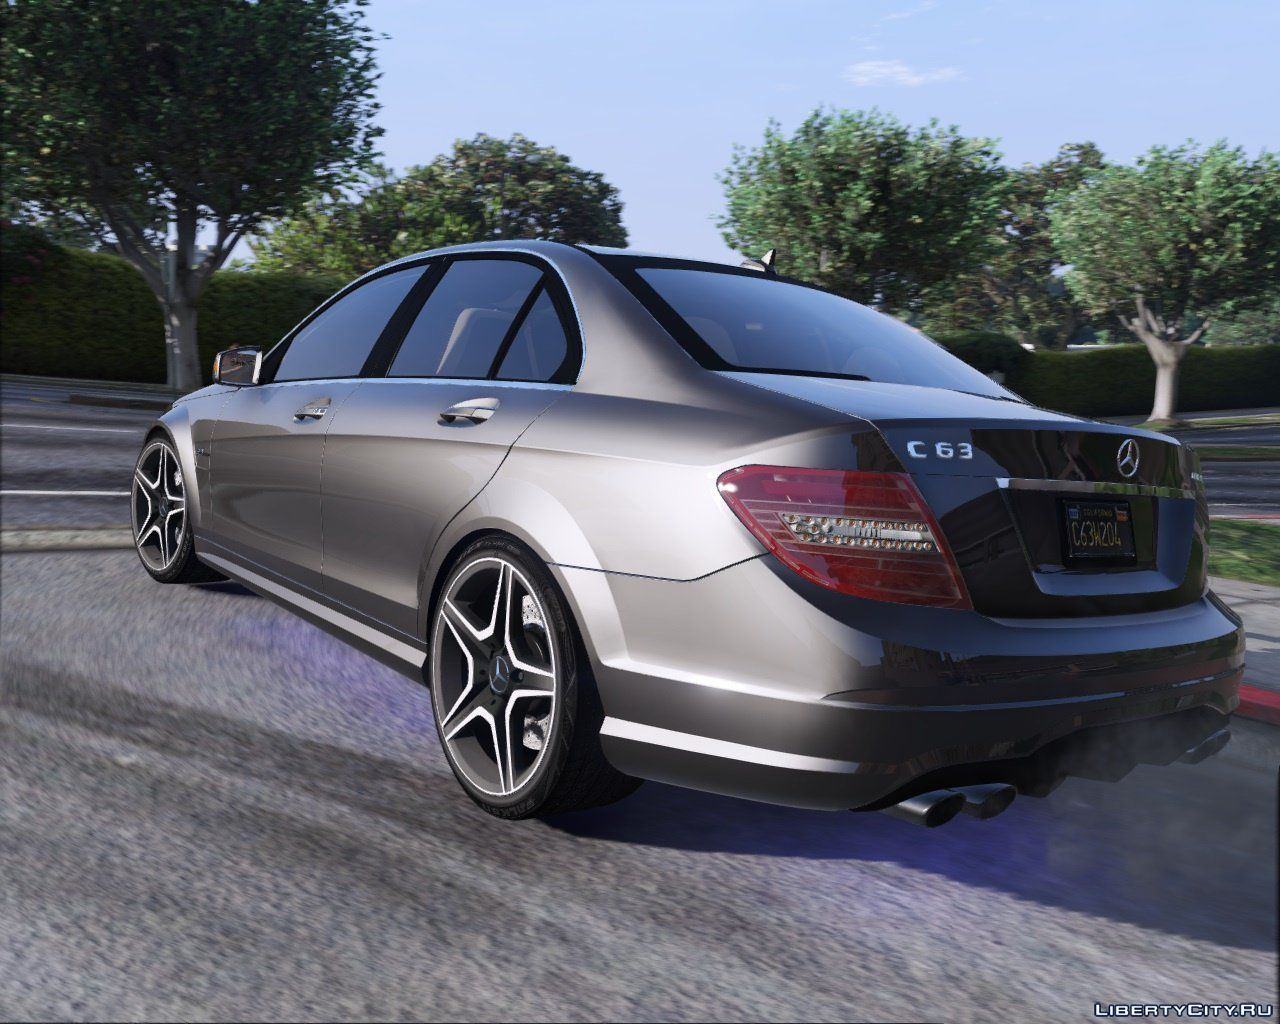 2014 mercedes benz c63 amg w204 add on replace tuning for Mercedes benz c63 2014